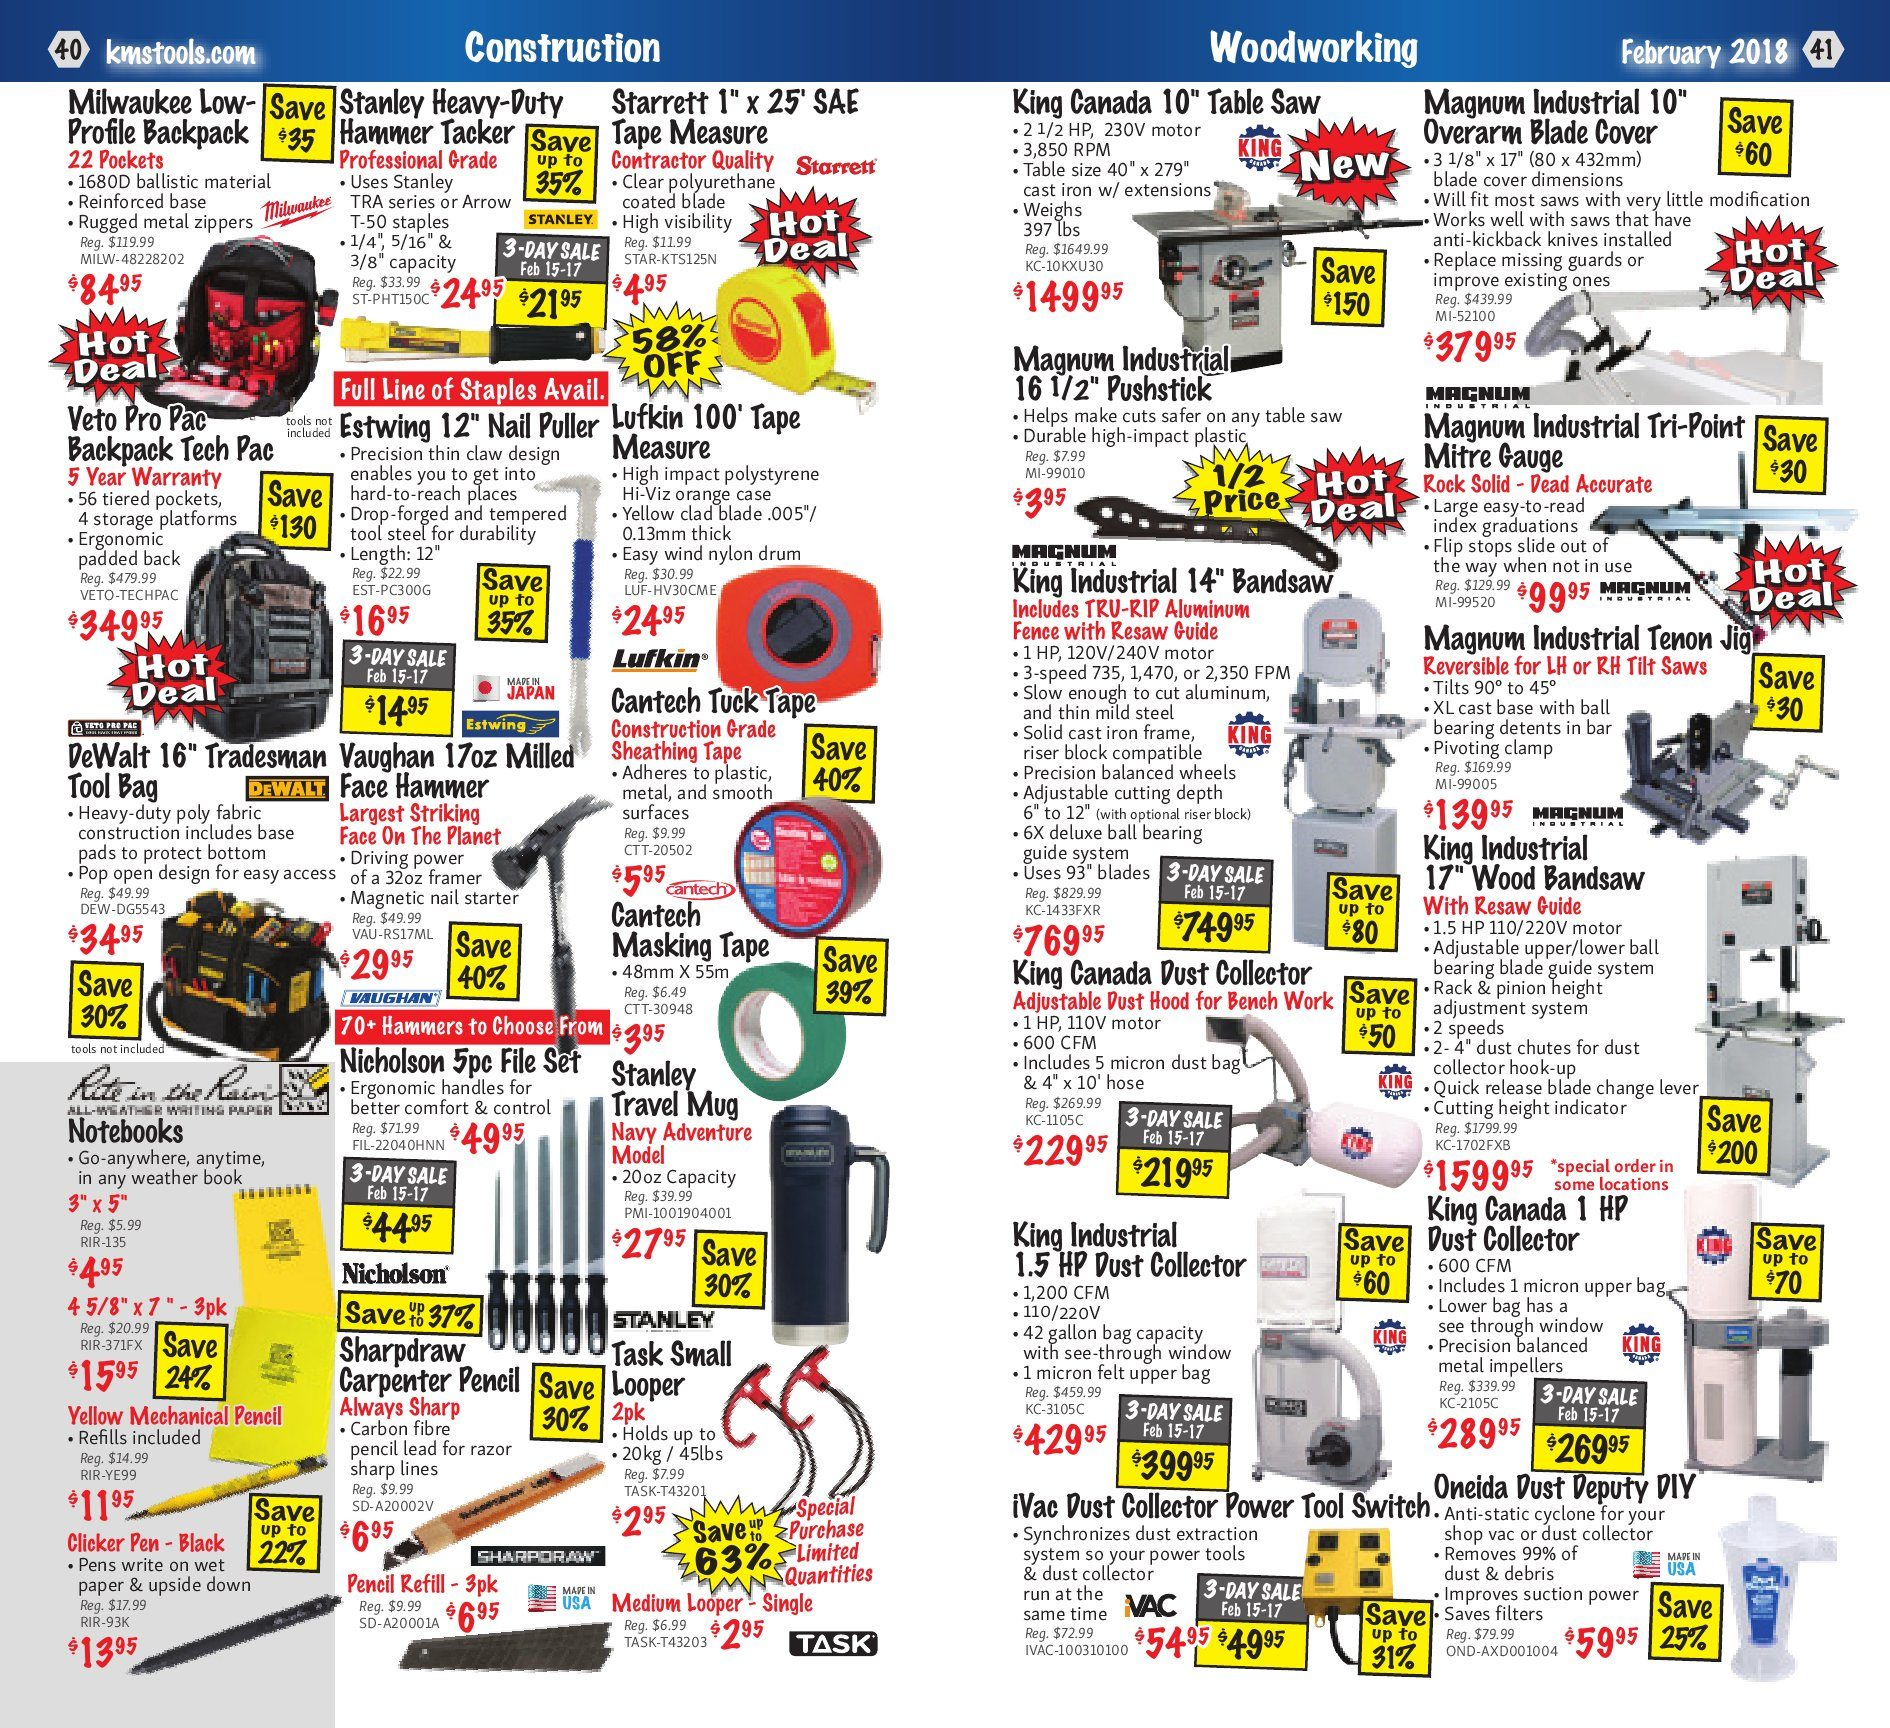 Kms Tools Weekly Flyer Welding Sale Feb 1 28 Channel 0 110v Constant Voltage Led Dimmer Switch Sr2002